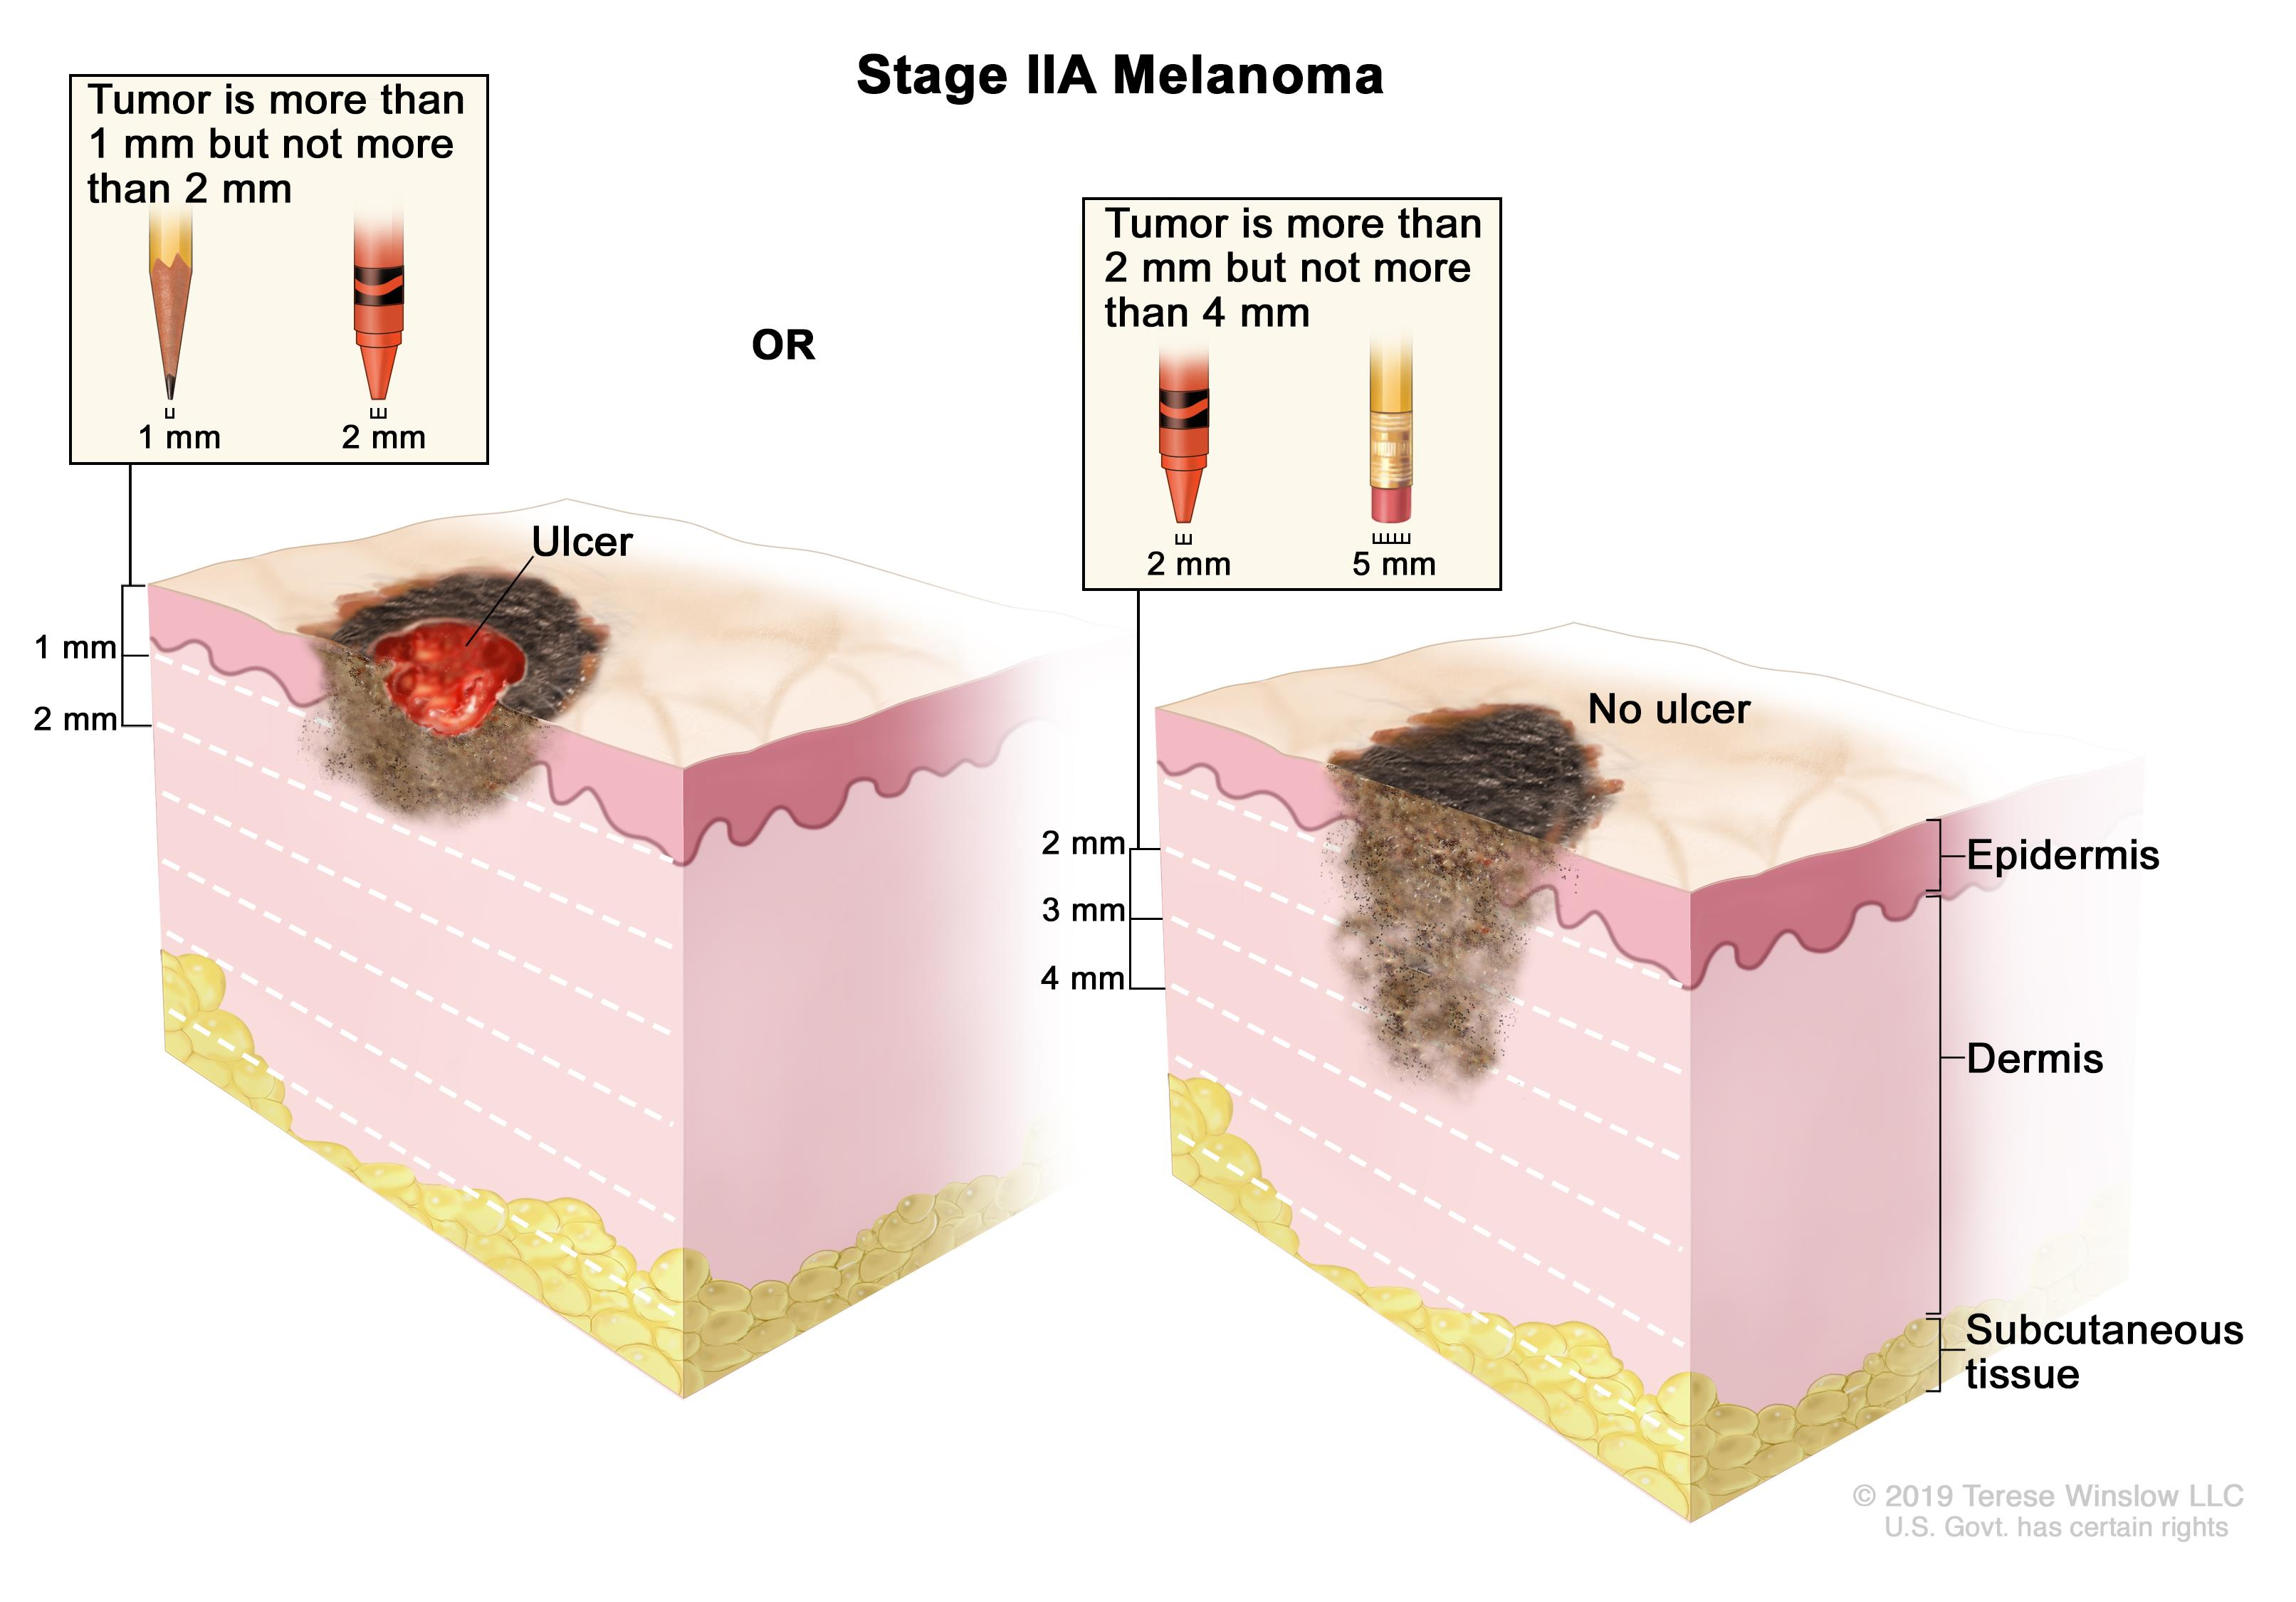 Two-panel drawing of stage IIA melanoma; the panel on the left shows a tumor that is more than 1 but not more than 2 millimeters thick, with ulceration (a break in the skin). The panel on the right shows a tumor that is more than 2 but not more than 4 millimeters thick, without ulceration. Also shown are the epidermis (outer layer of the skin), the dermis (inner layer of the skin), and the subcutaneous tissue below the dermis.